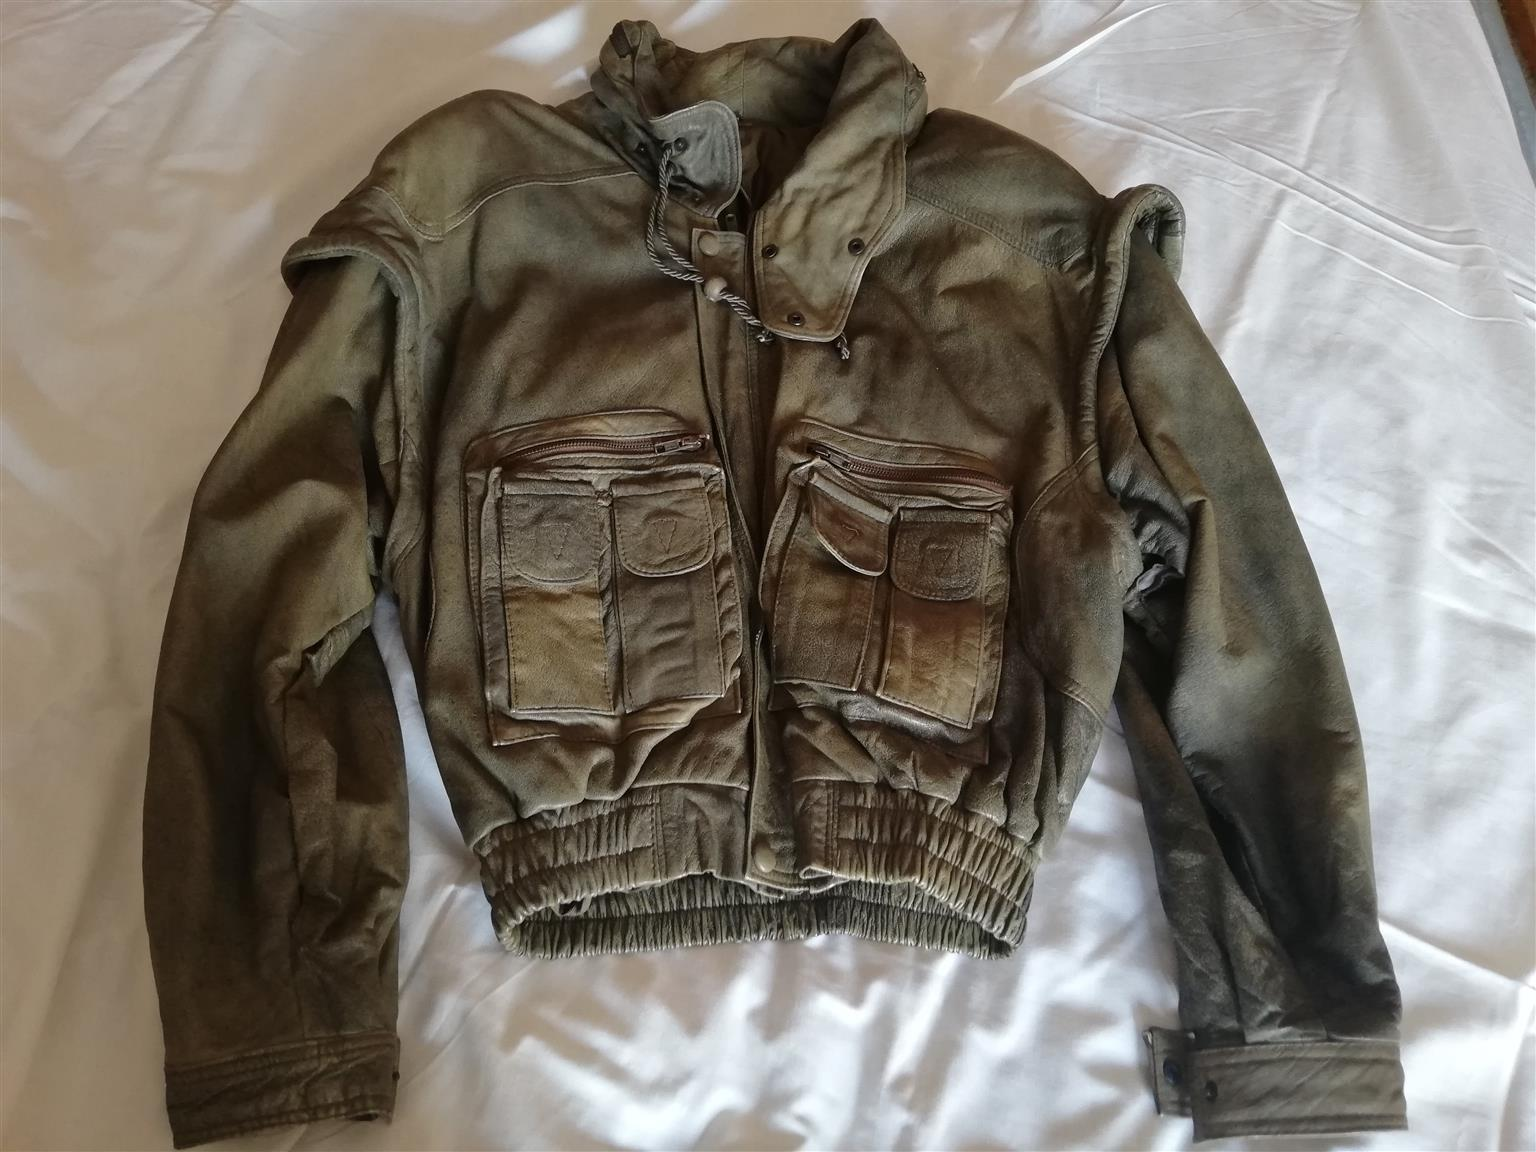 Leather Jacket, Gents, size Large, colour antique green, imported from Turkey.